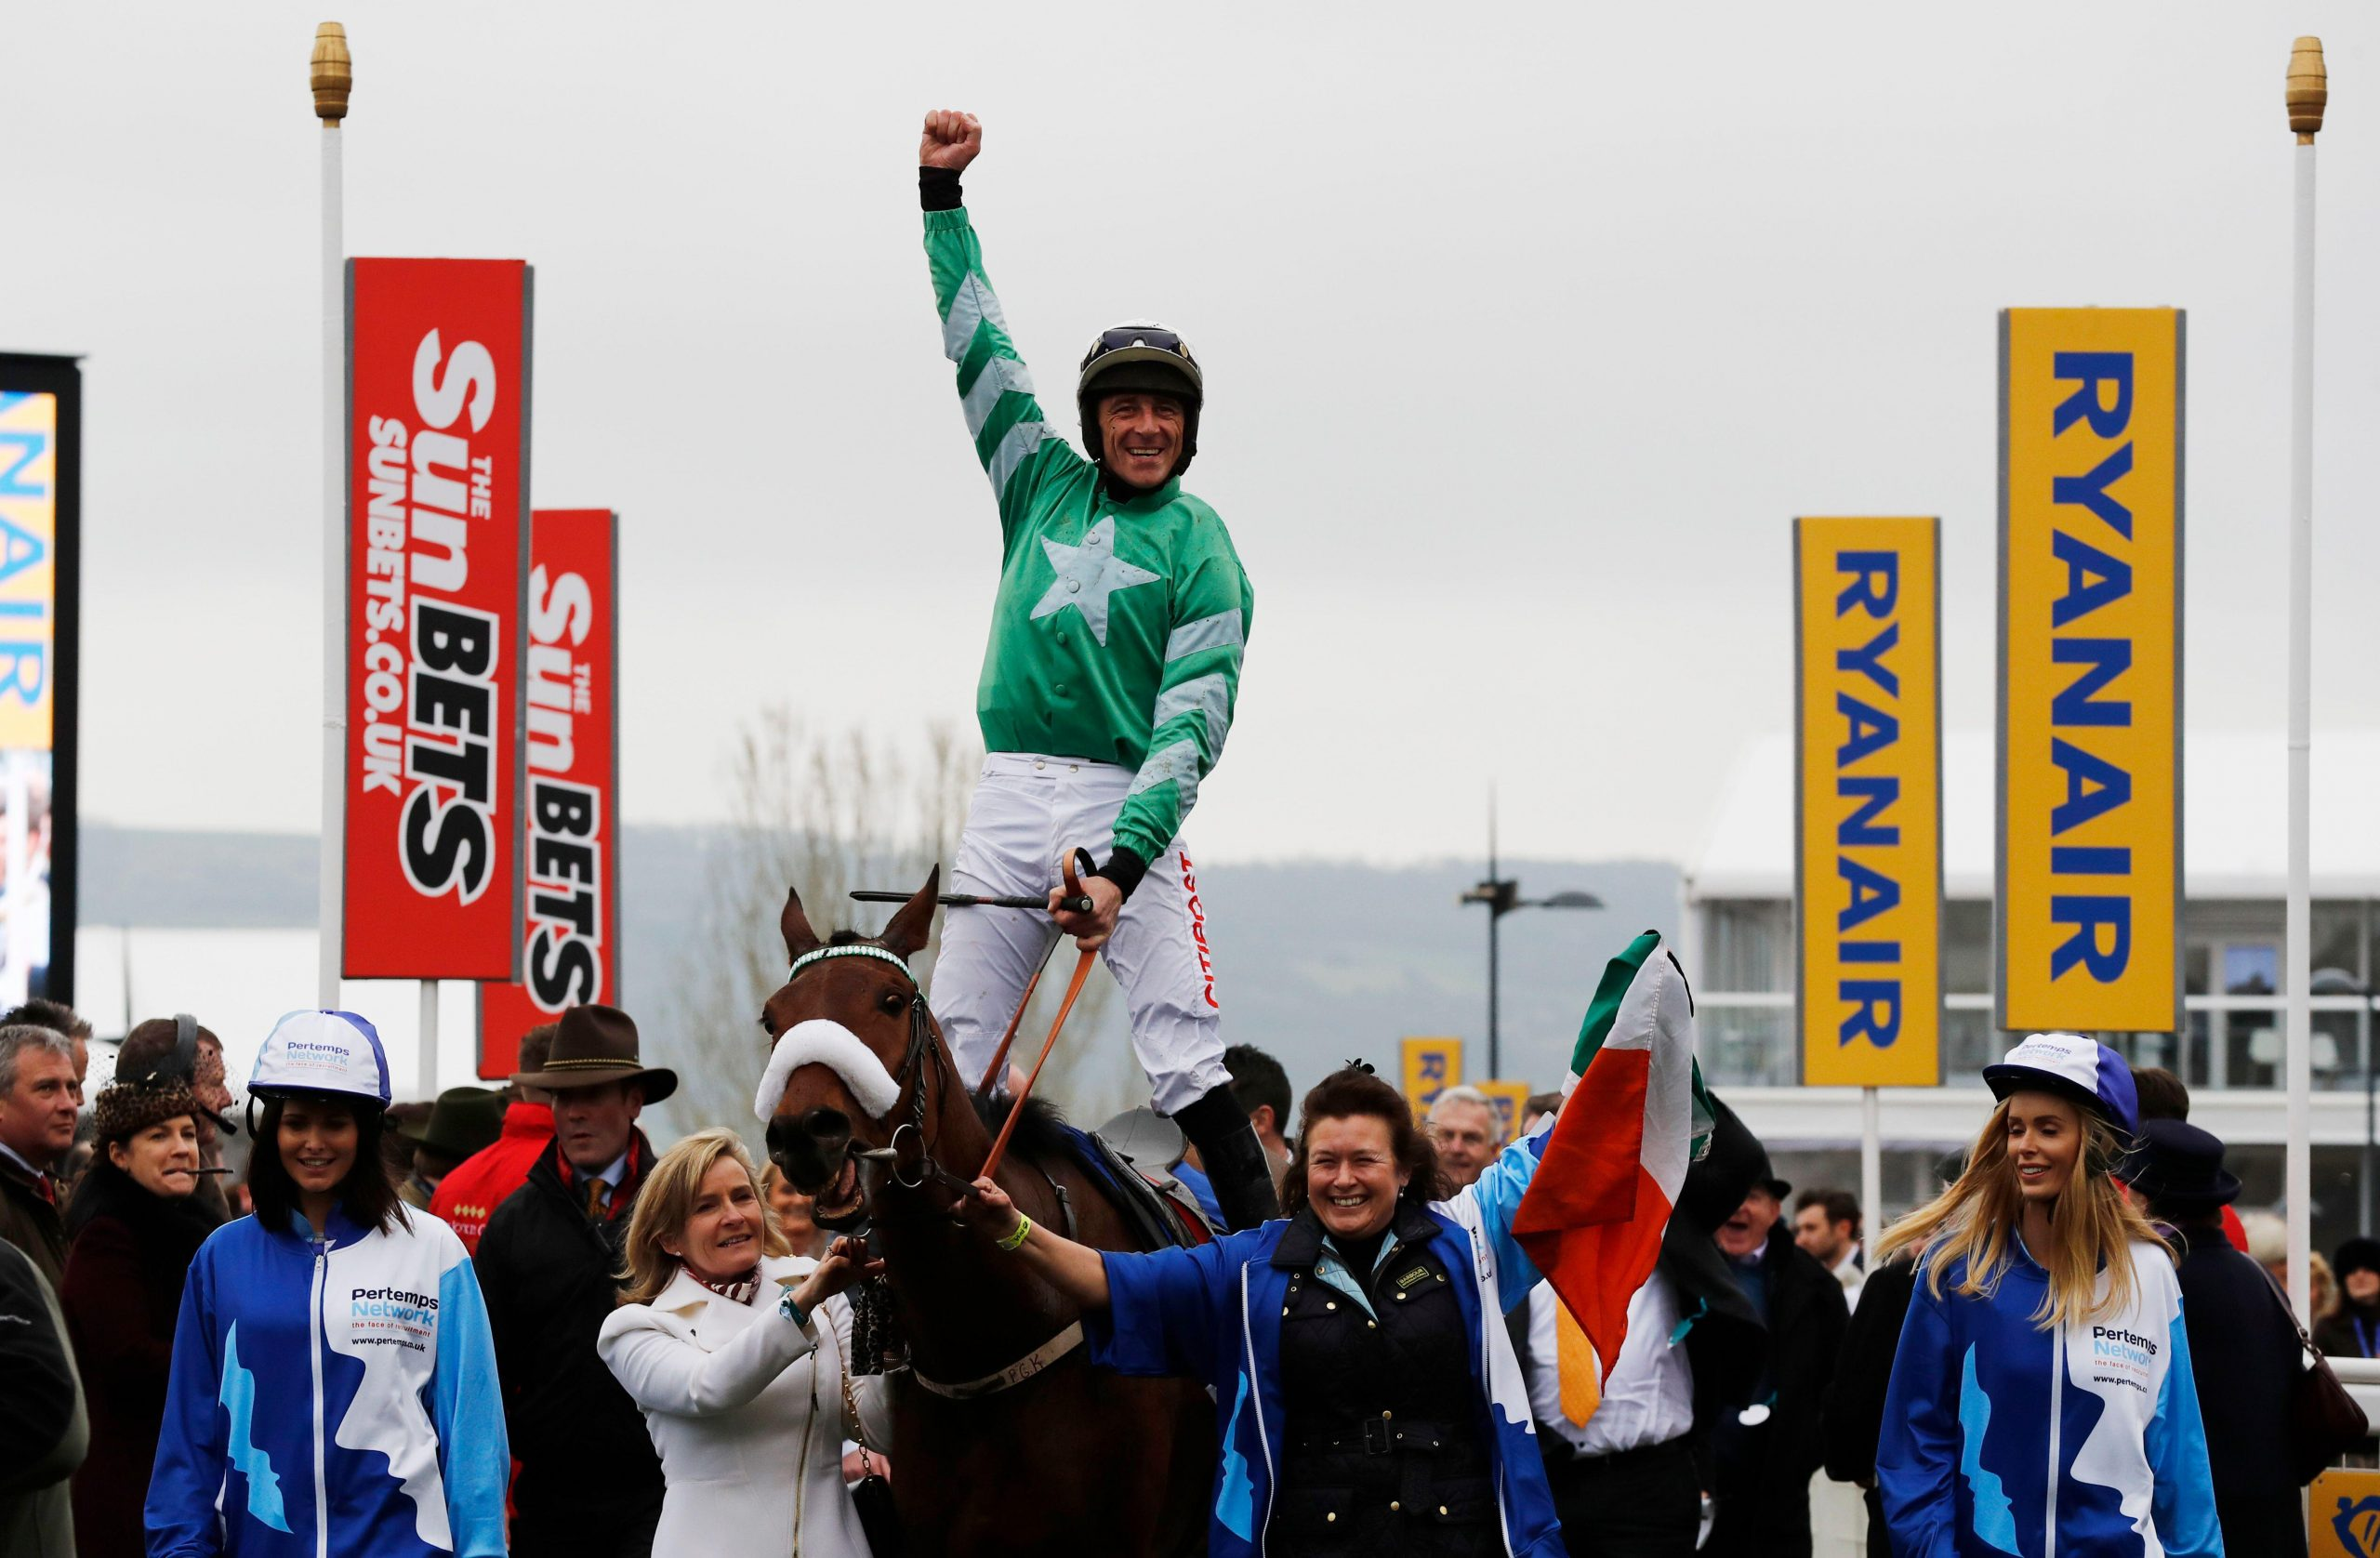 2EDJD03 Britain Horse Racing - Cheltenham Festival - Cheltenham Racecourse - 16/3/17 Davy Russell on Presenting Percy celebrates winning the 2.10 Pertemps Network Final Handicap Hurdle Reuters / Stefan Wermuth Livepic EDITORIAL USE ONLY.